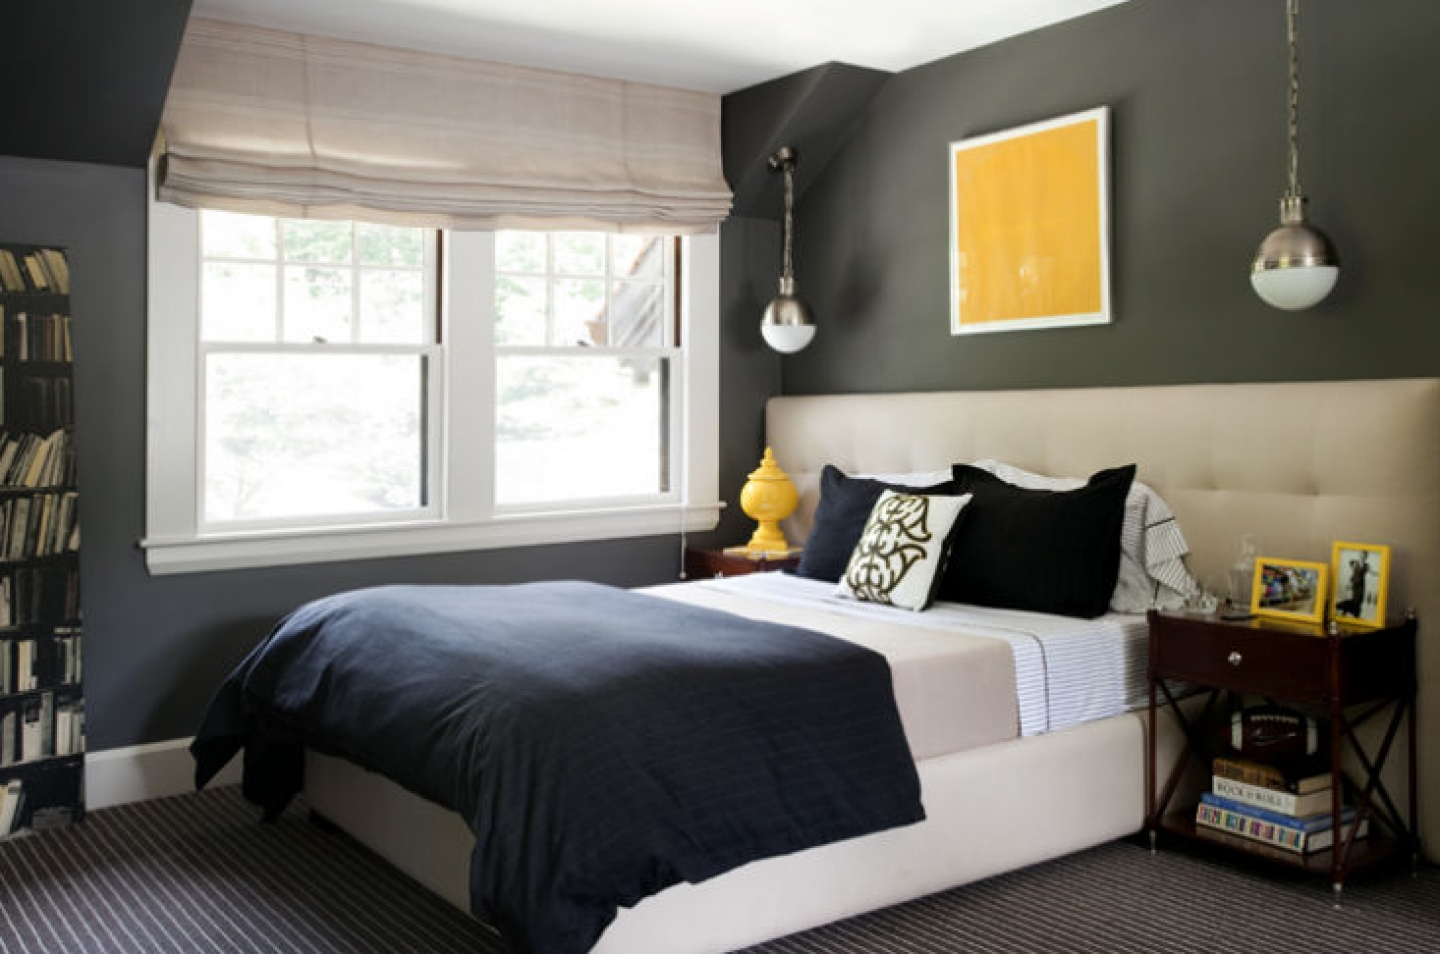 An Ideal Color Scheme For A Small Bedroom, A Grayed Pale ...